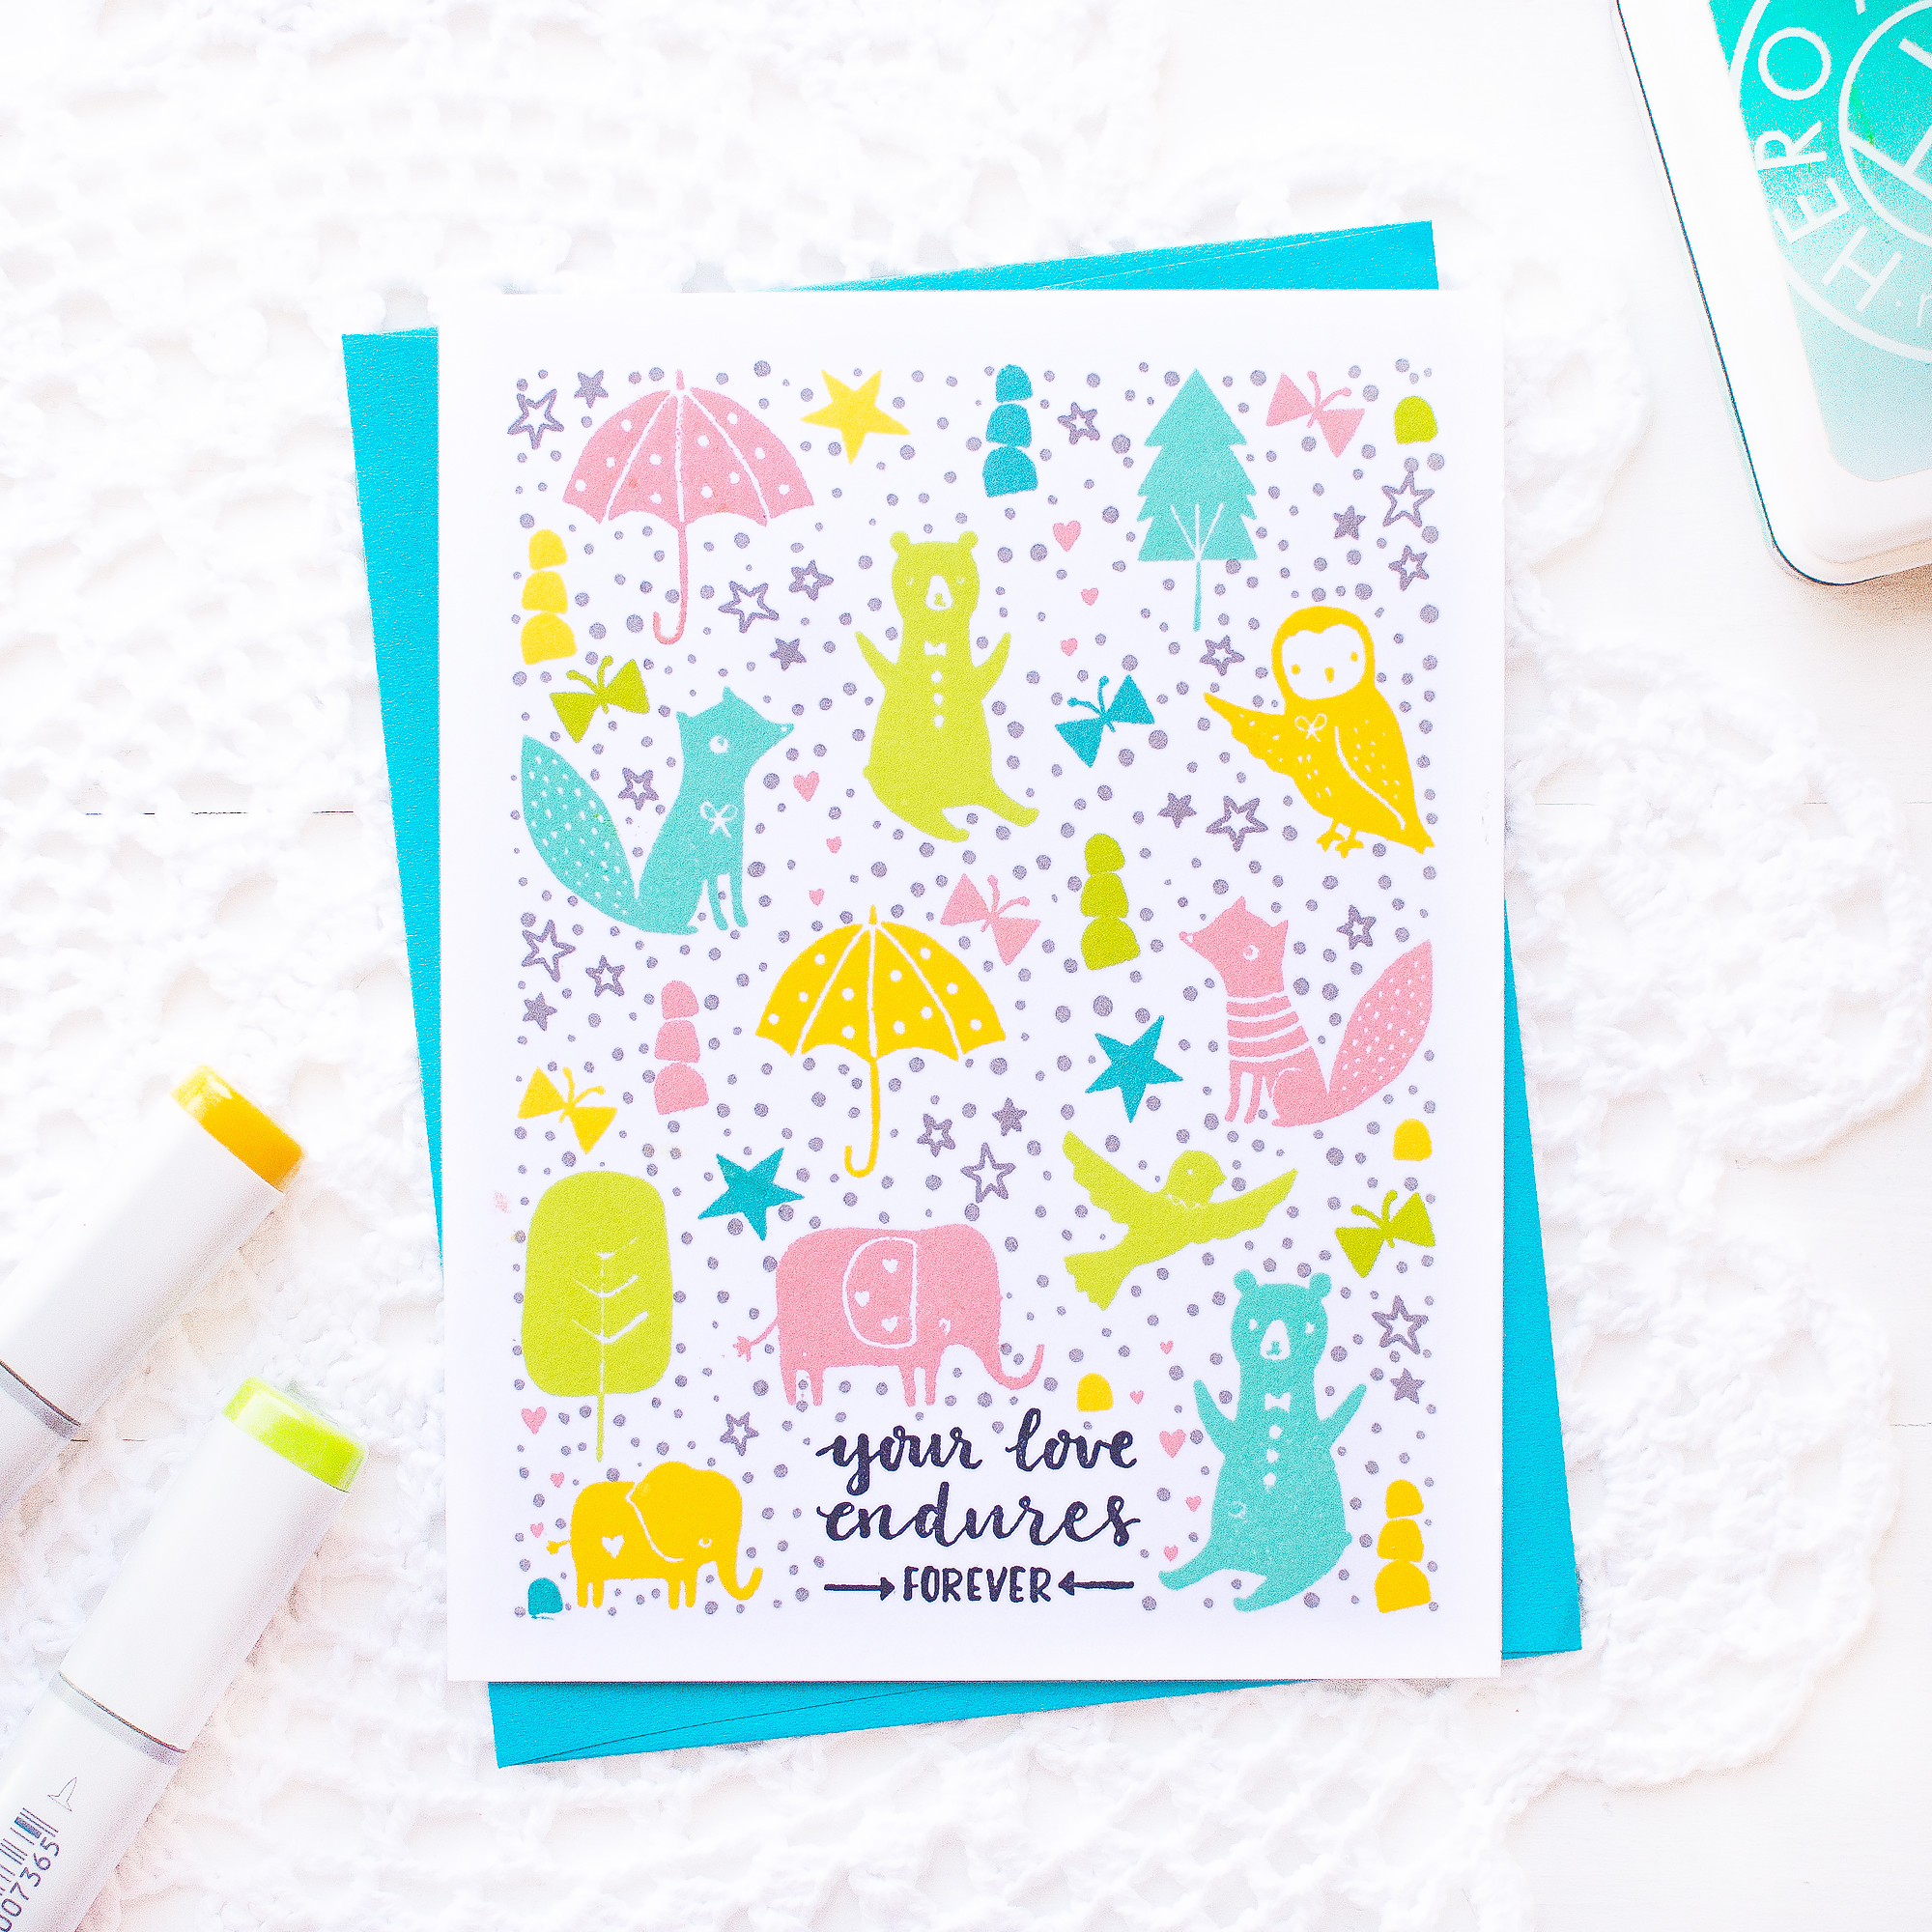 pinkfresh-studio-stamp-die-release-blog-hop-giveaway